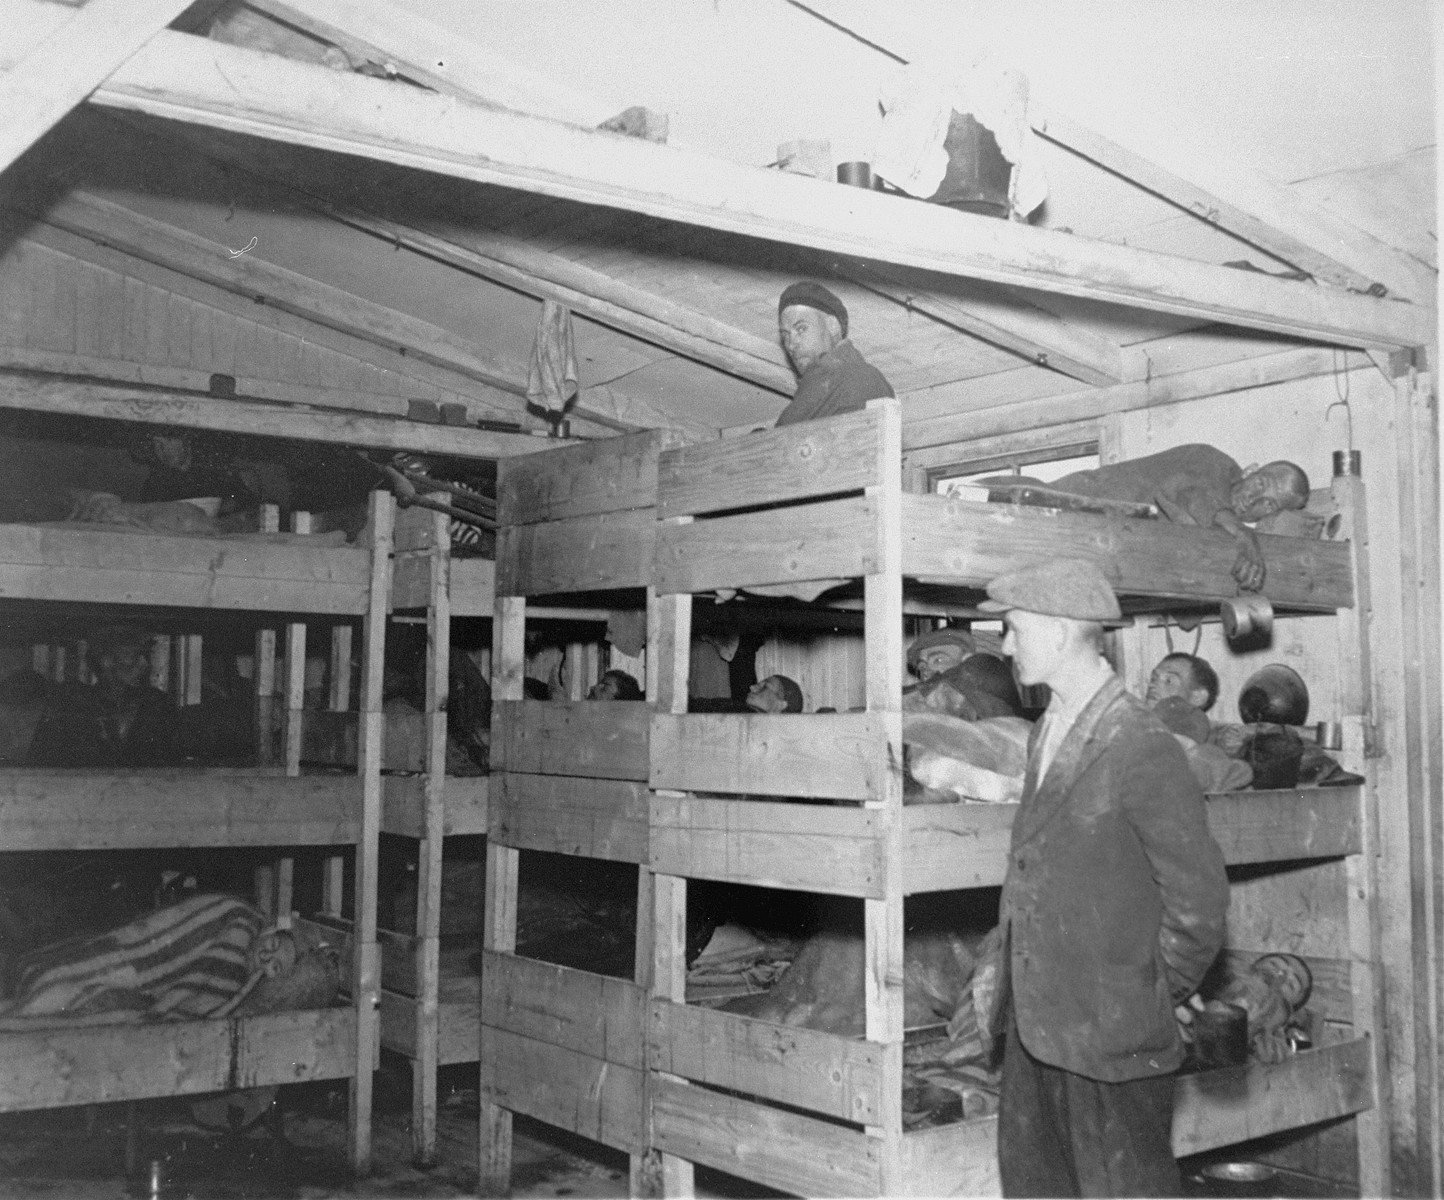 Prisoners in a barracks at liberation.